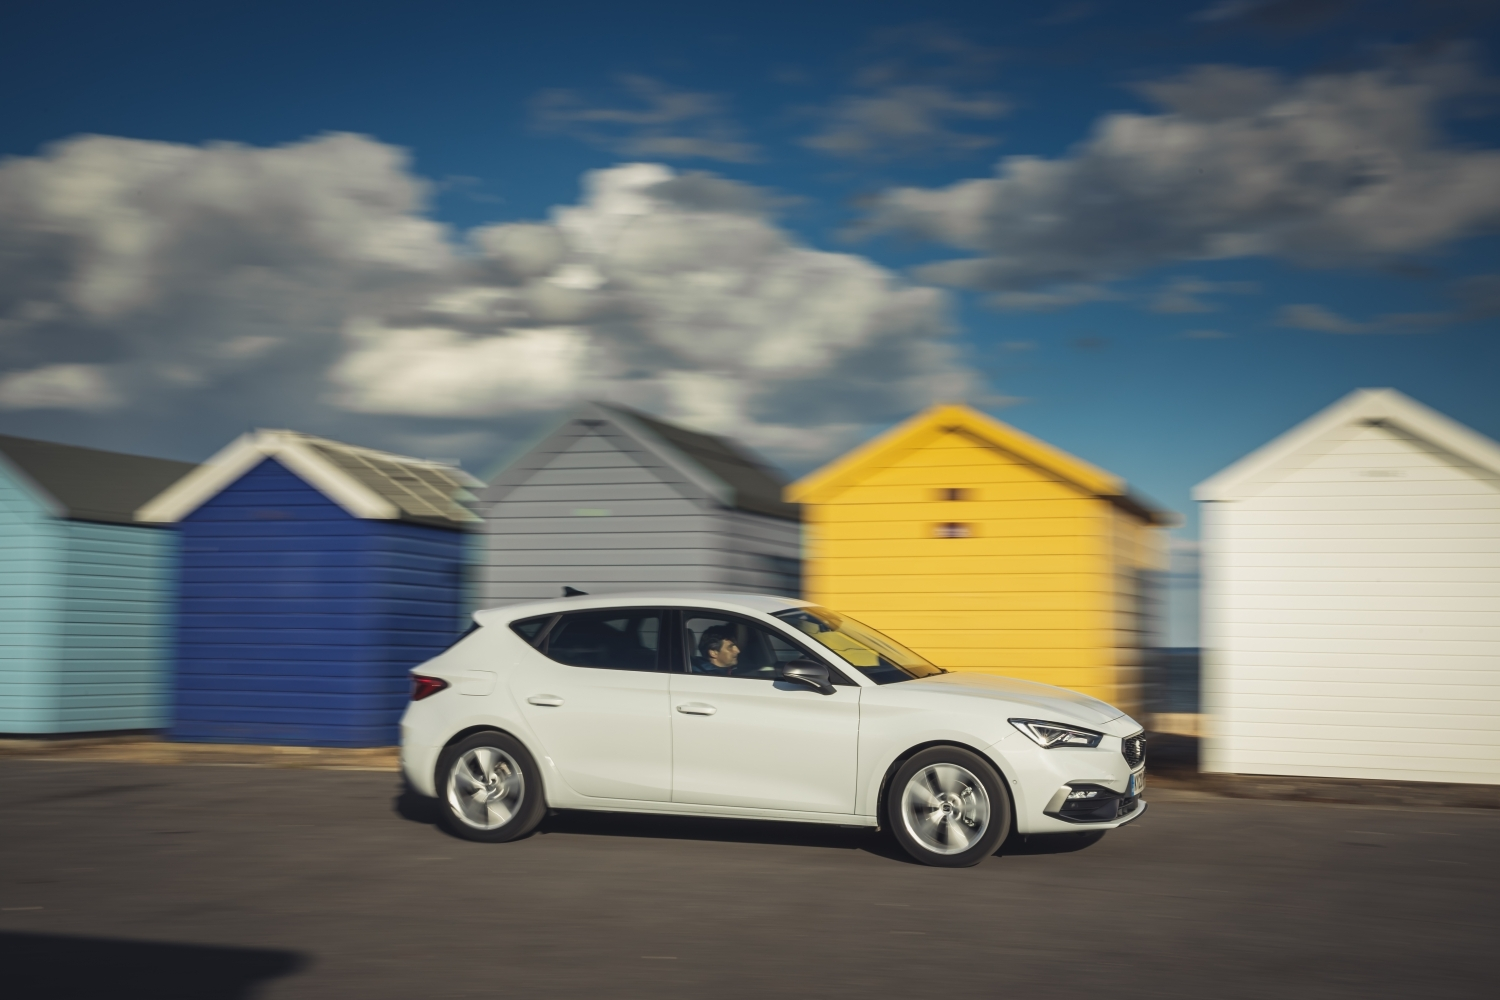 white seat leon driving in front of beach huts